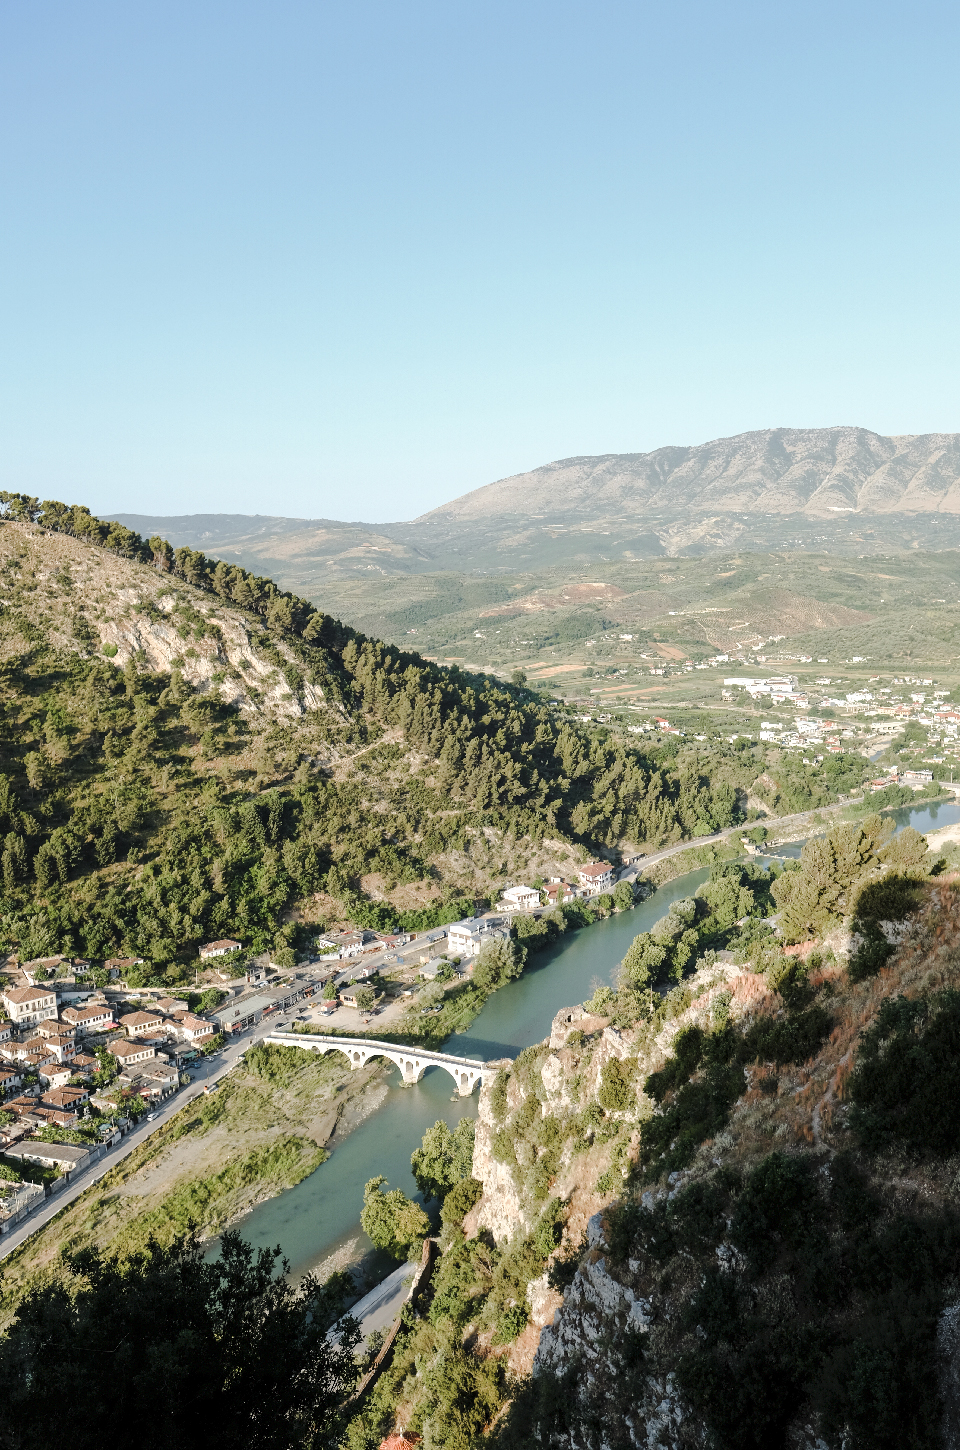 View from the top of the castle of Berat